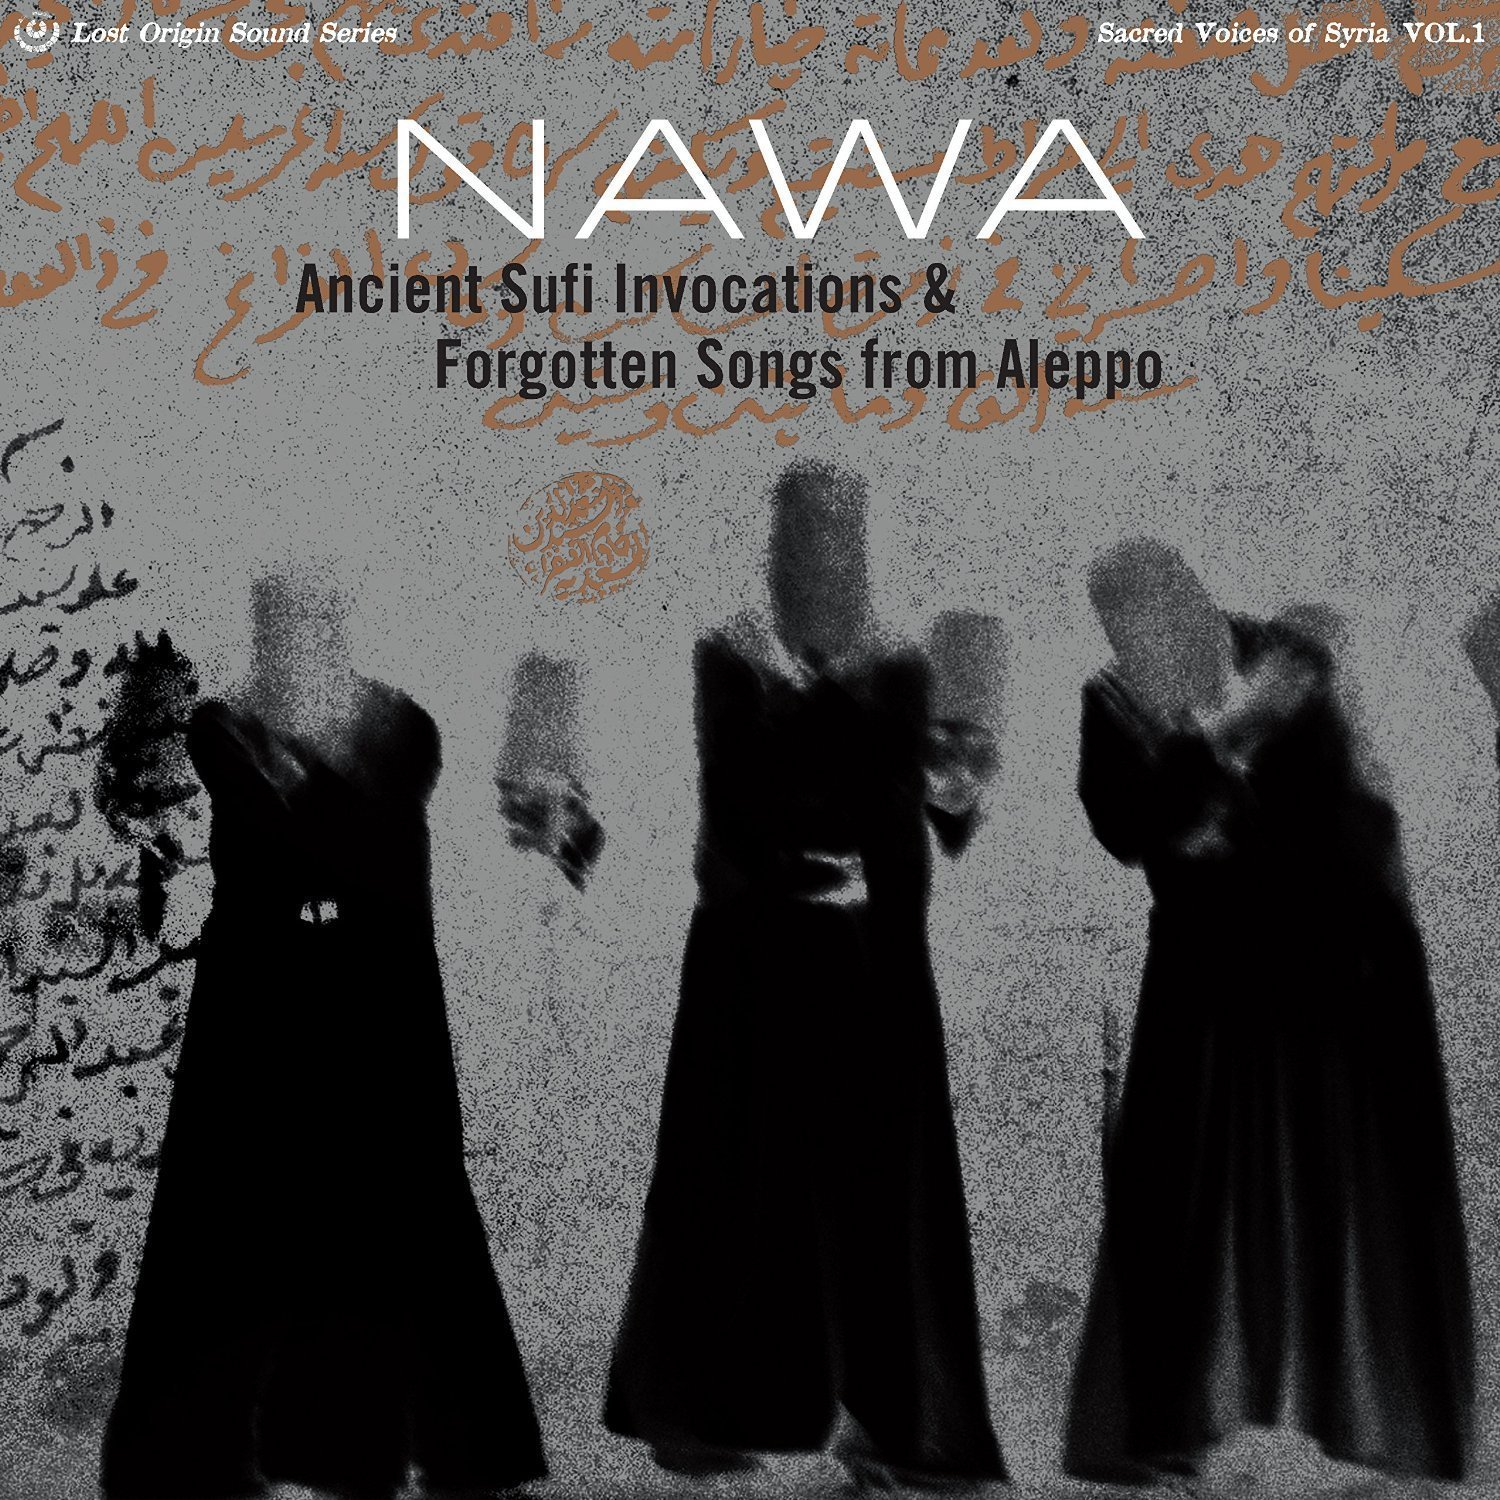 Ancient Sufi Invocations & Forgotten Songs of Aleppo